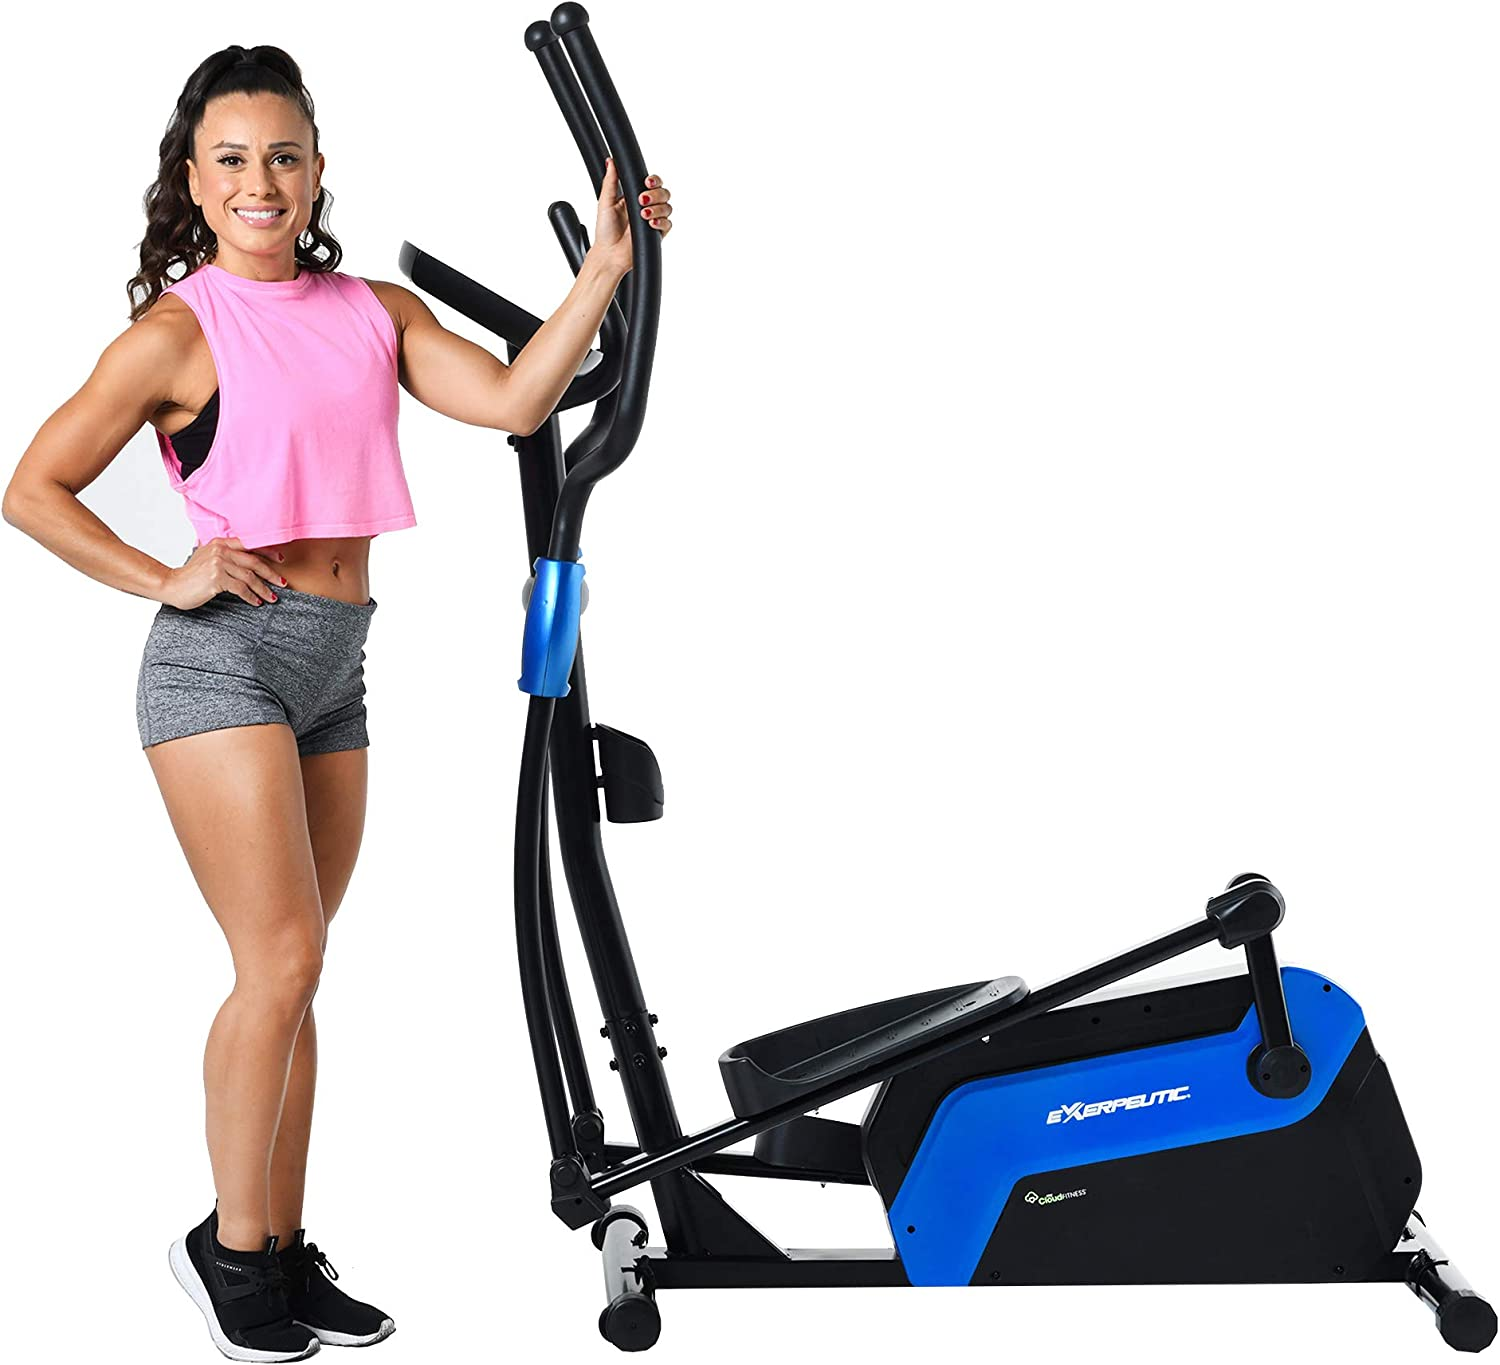 Exerputic 6000 QF Magnetic Elliptical with Bluetooth MyCloudFitness App